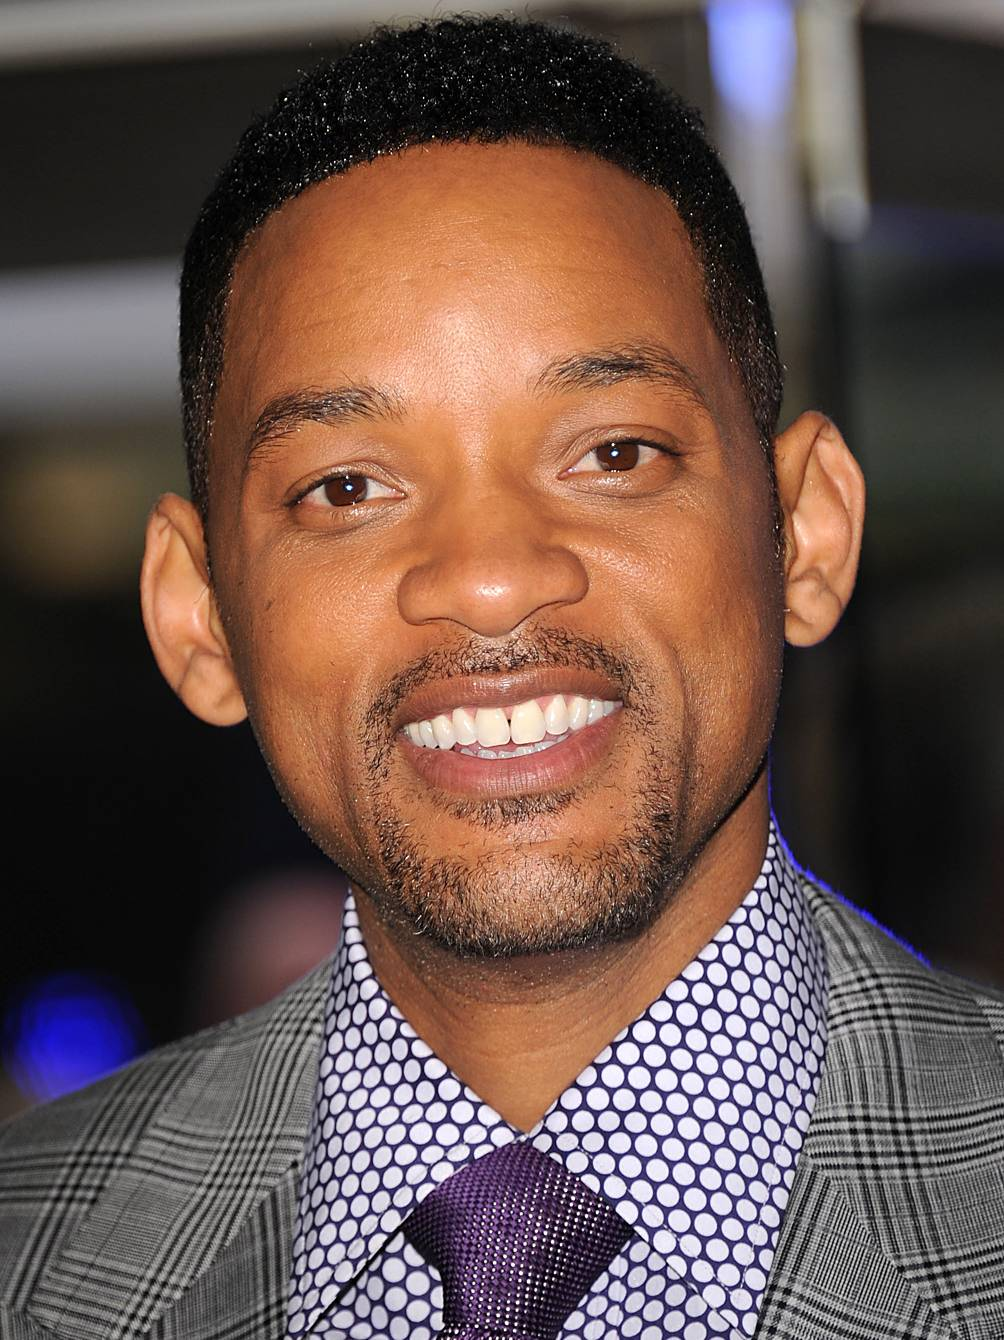 """Will Smith - While at a press junket promoting Men in Black III in Berlin, the actor told reporters, """"If anybody can find someone to love them and to help them through this difficult thing that we call life, I support that in any shape or form,"""" The Washington Post reported recently.(Photo: Stuart Wilson/Getty Images)"""